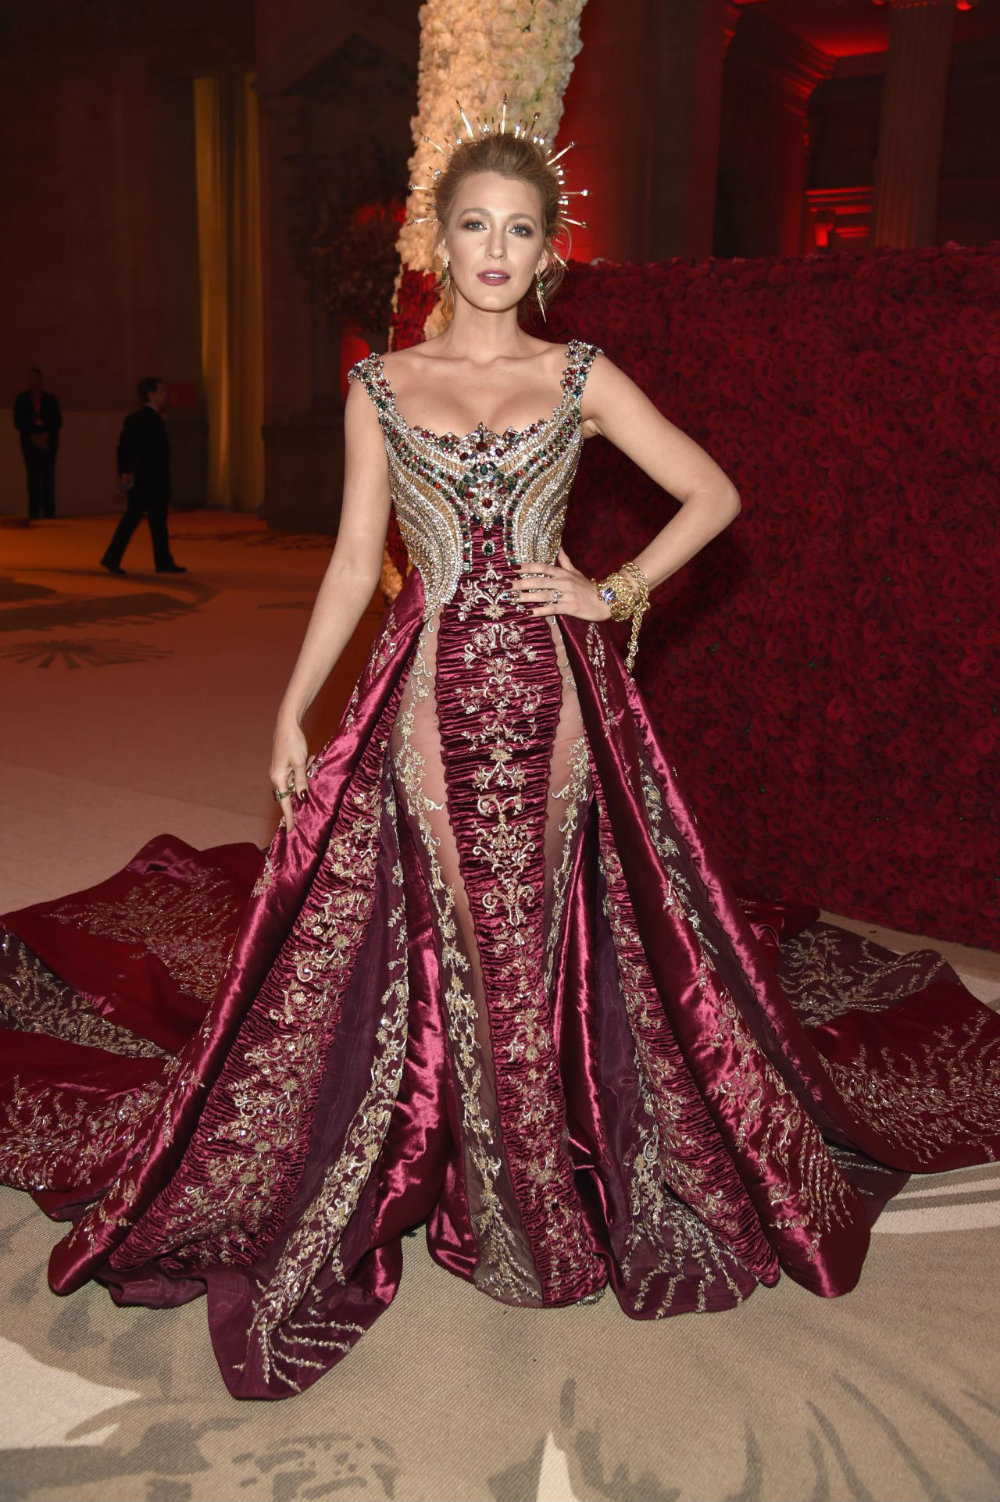 Met Gala 2018 The Best Looks from the Red Carpet 06 Met Gala 2018 Met Gala 2018: The Best Looks from the Red Carpet Met Gala 2018 The Best Looks from the Red Carpet 06